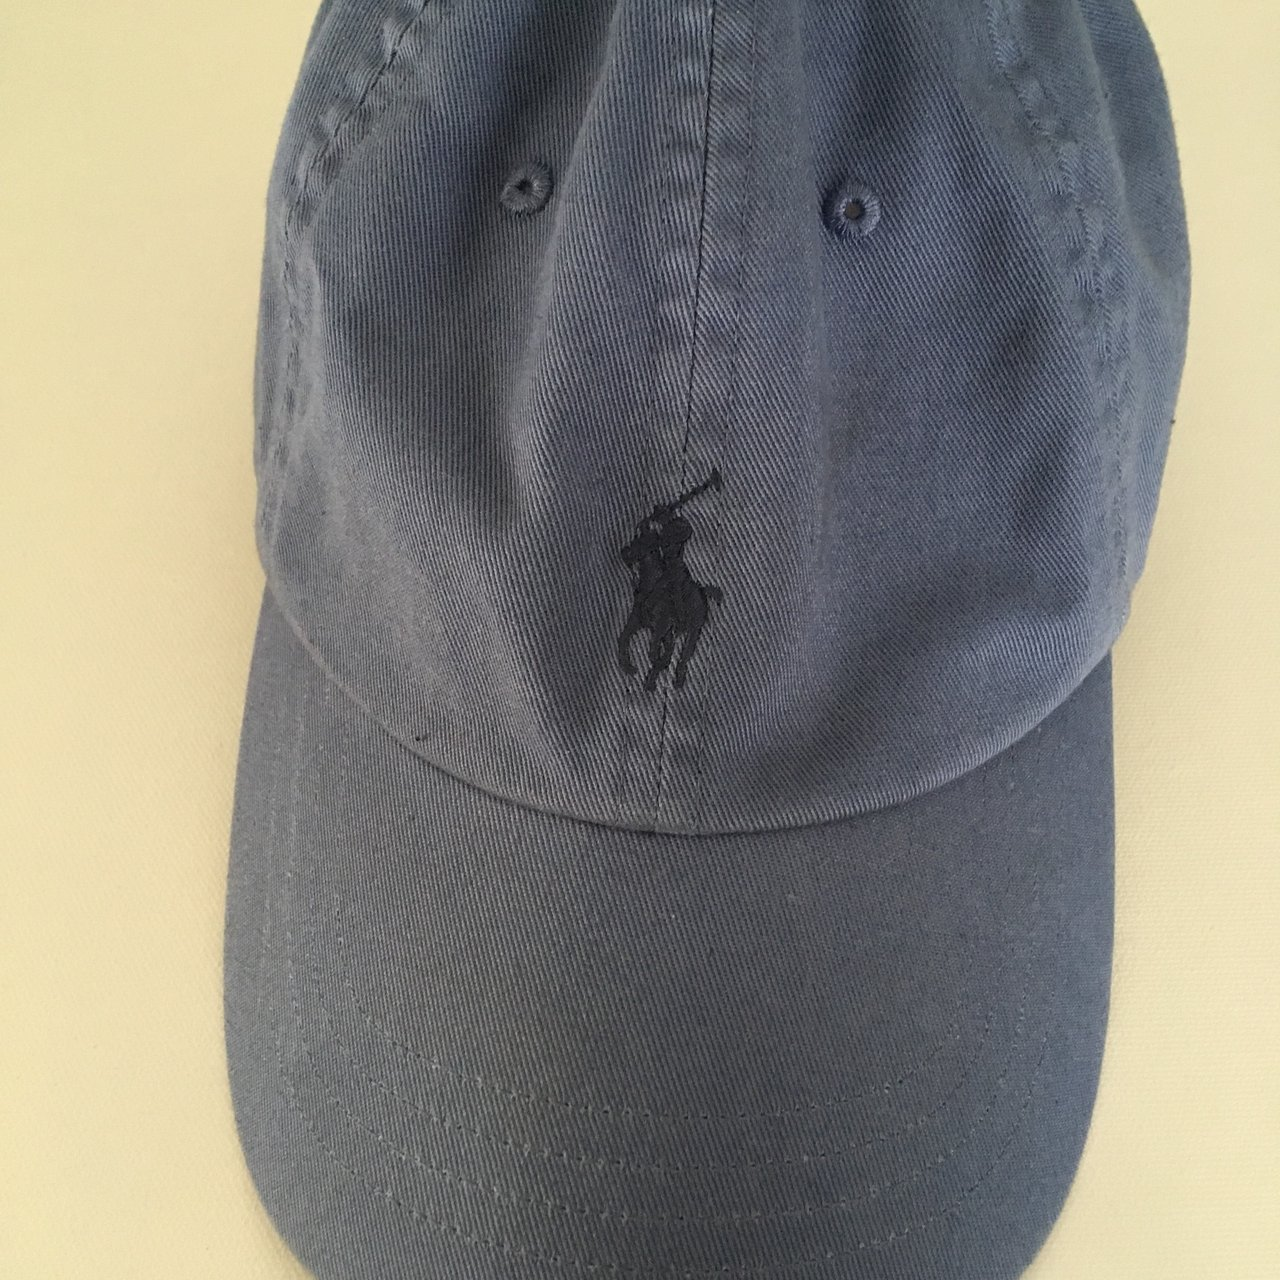 b47053a4f68 Polo Ralph Lauren Flexible Hat  polo  ralphlauren  hats - Depop